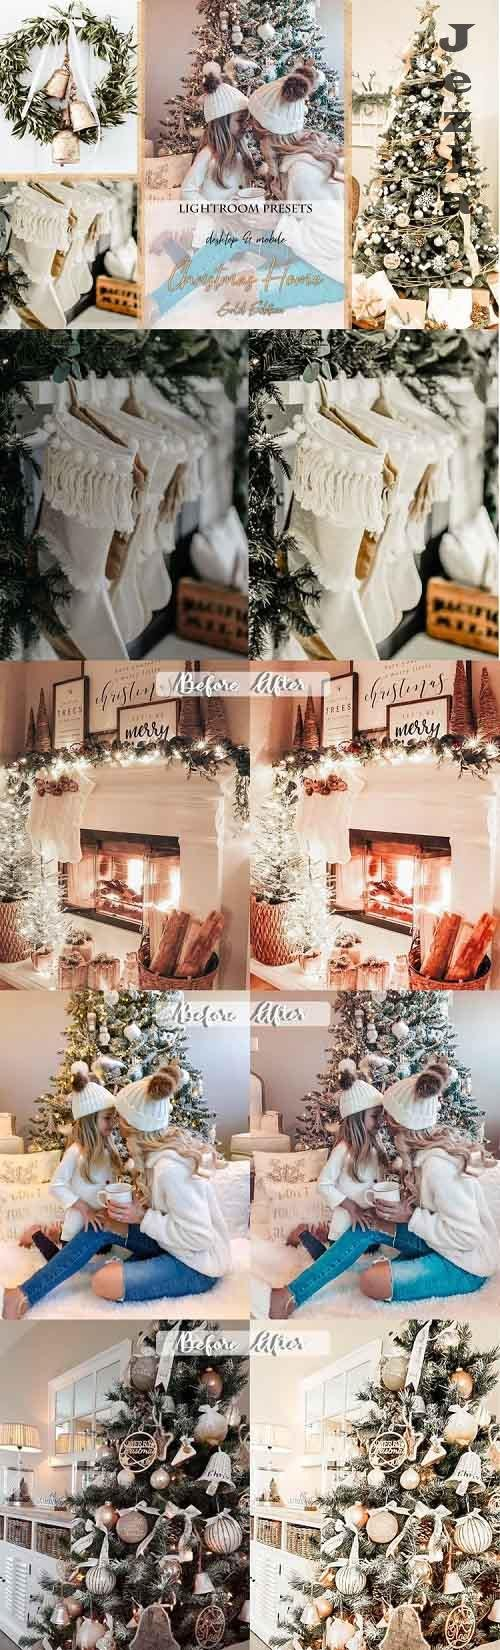 Christmas Home Gold Edition Lightroom Presets - 931319